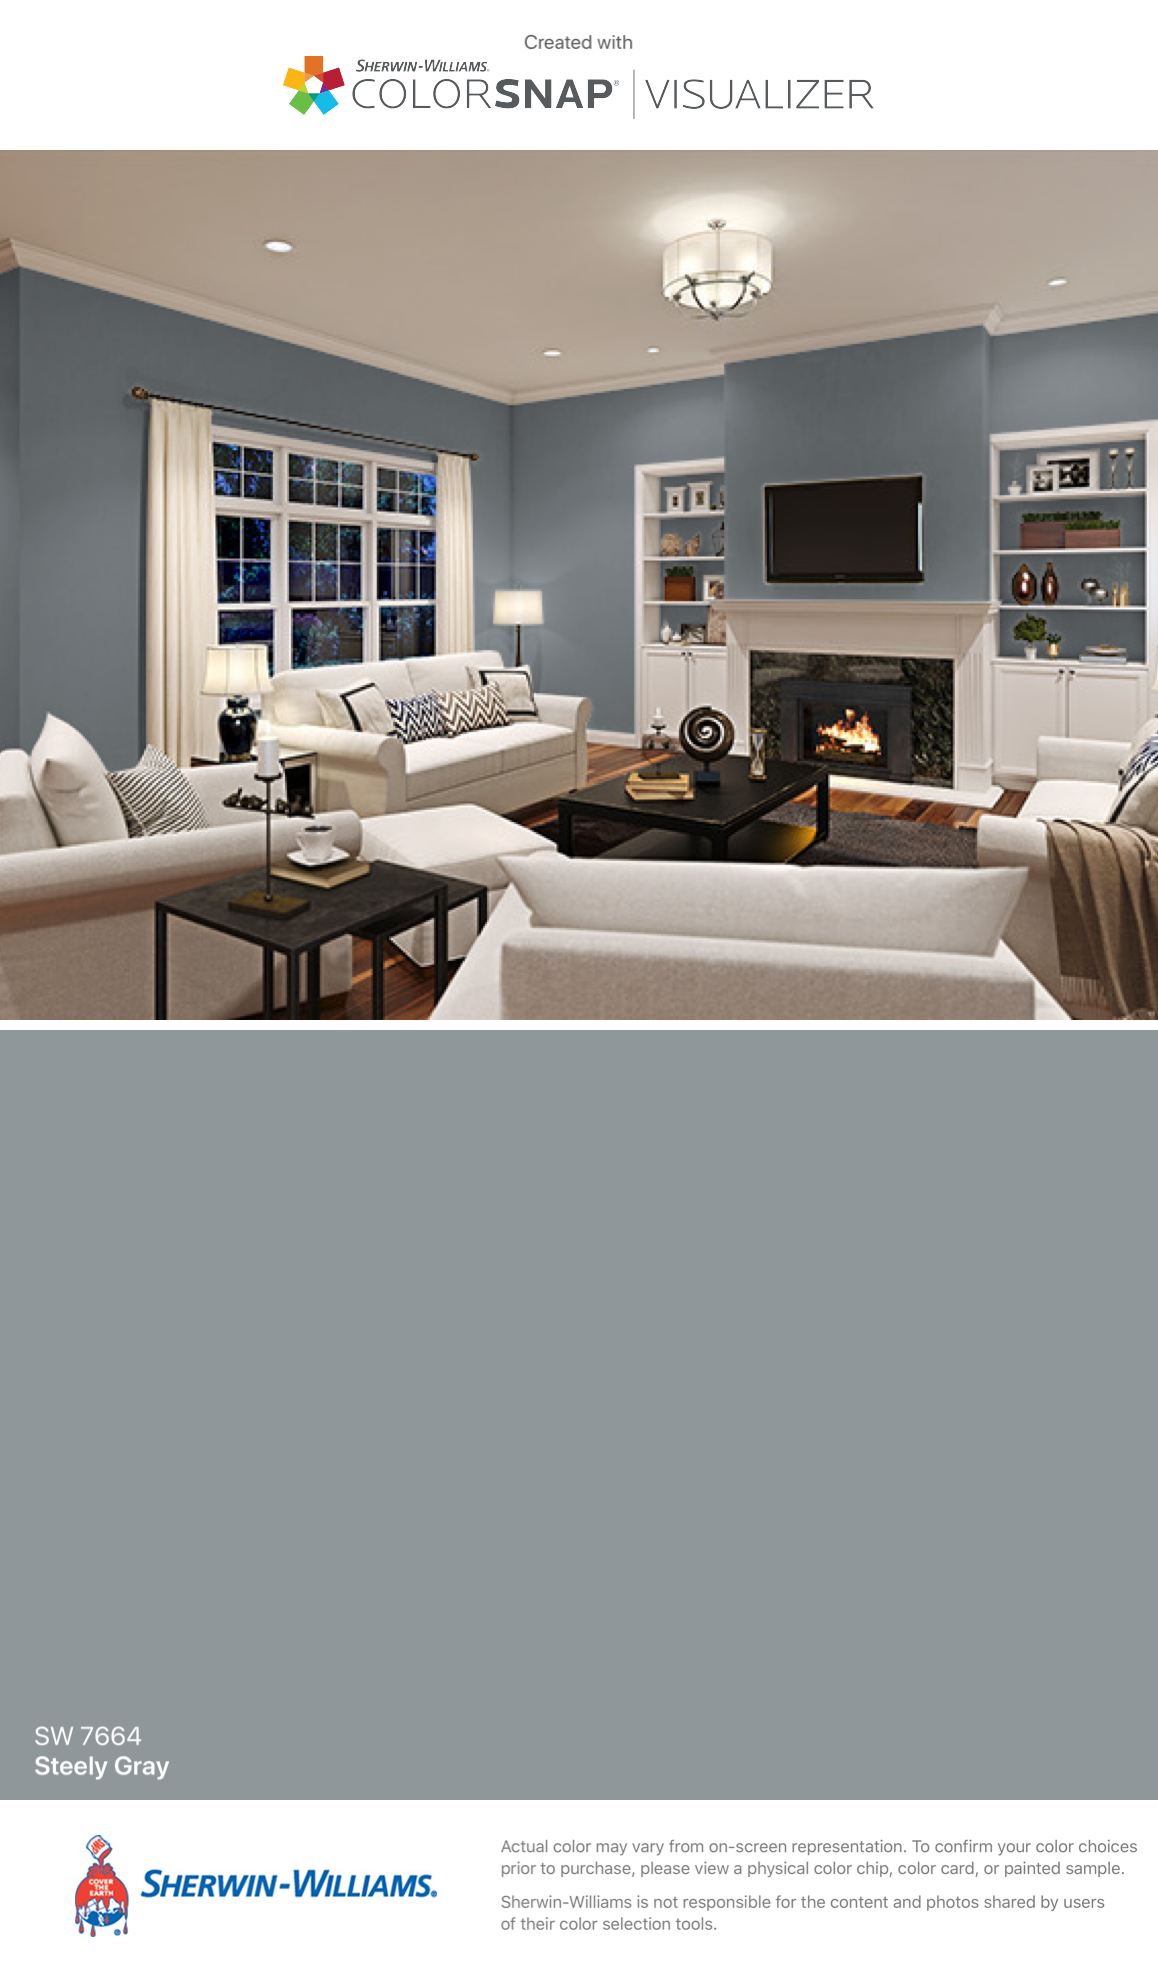 I Found This Color With Colorsnap Visualizer For Iphone By Sherwin Williams Steely Gray Sw 7664 Sherwin Williams Paint Colors Home Sherwin Williams Green